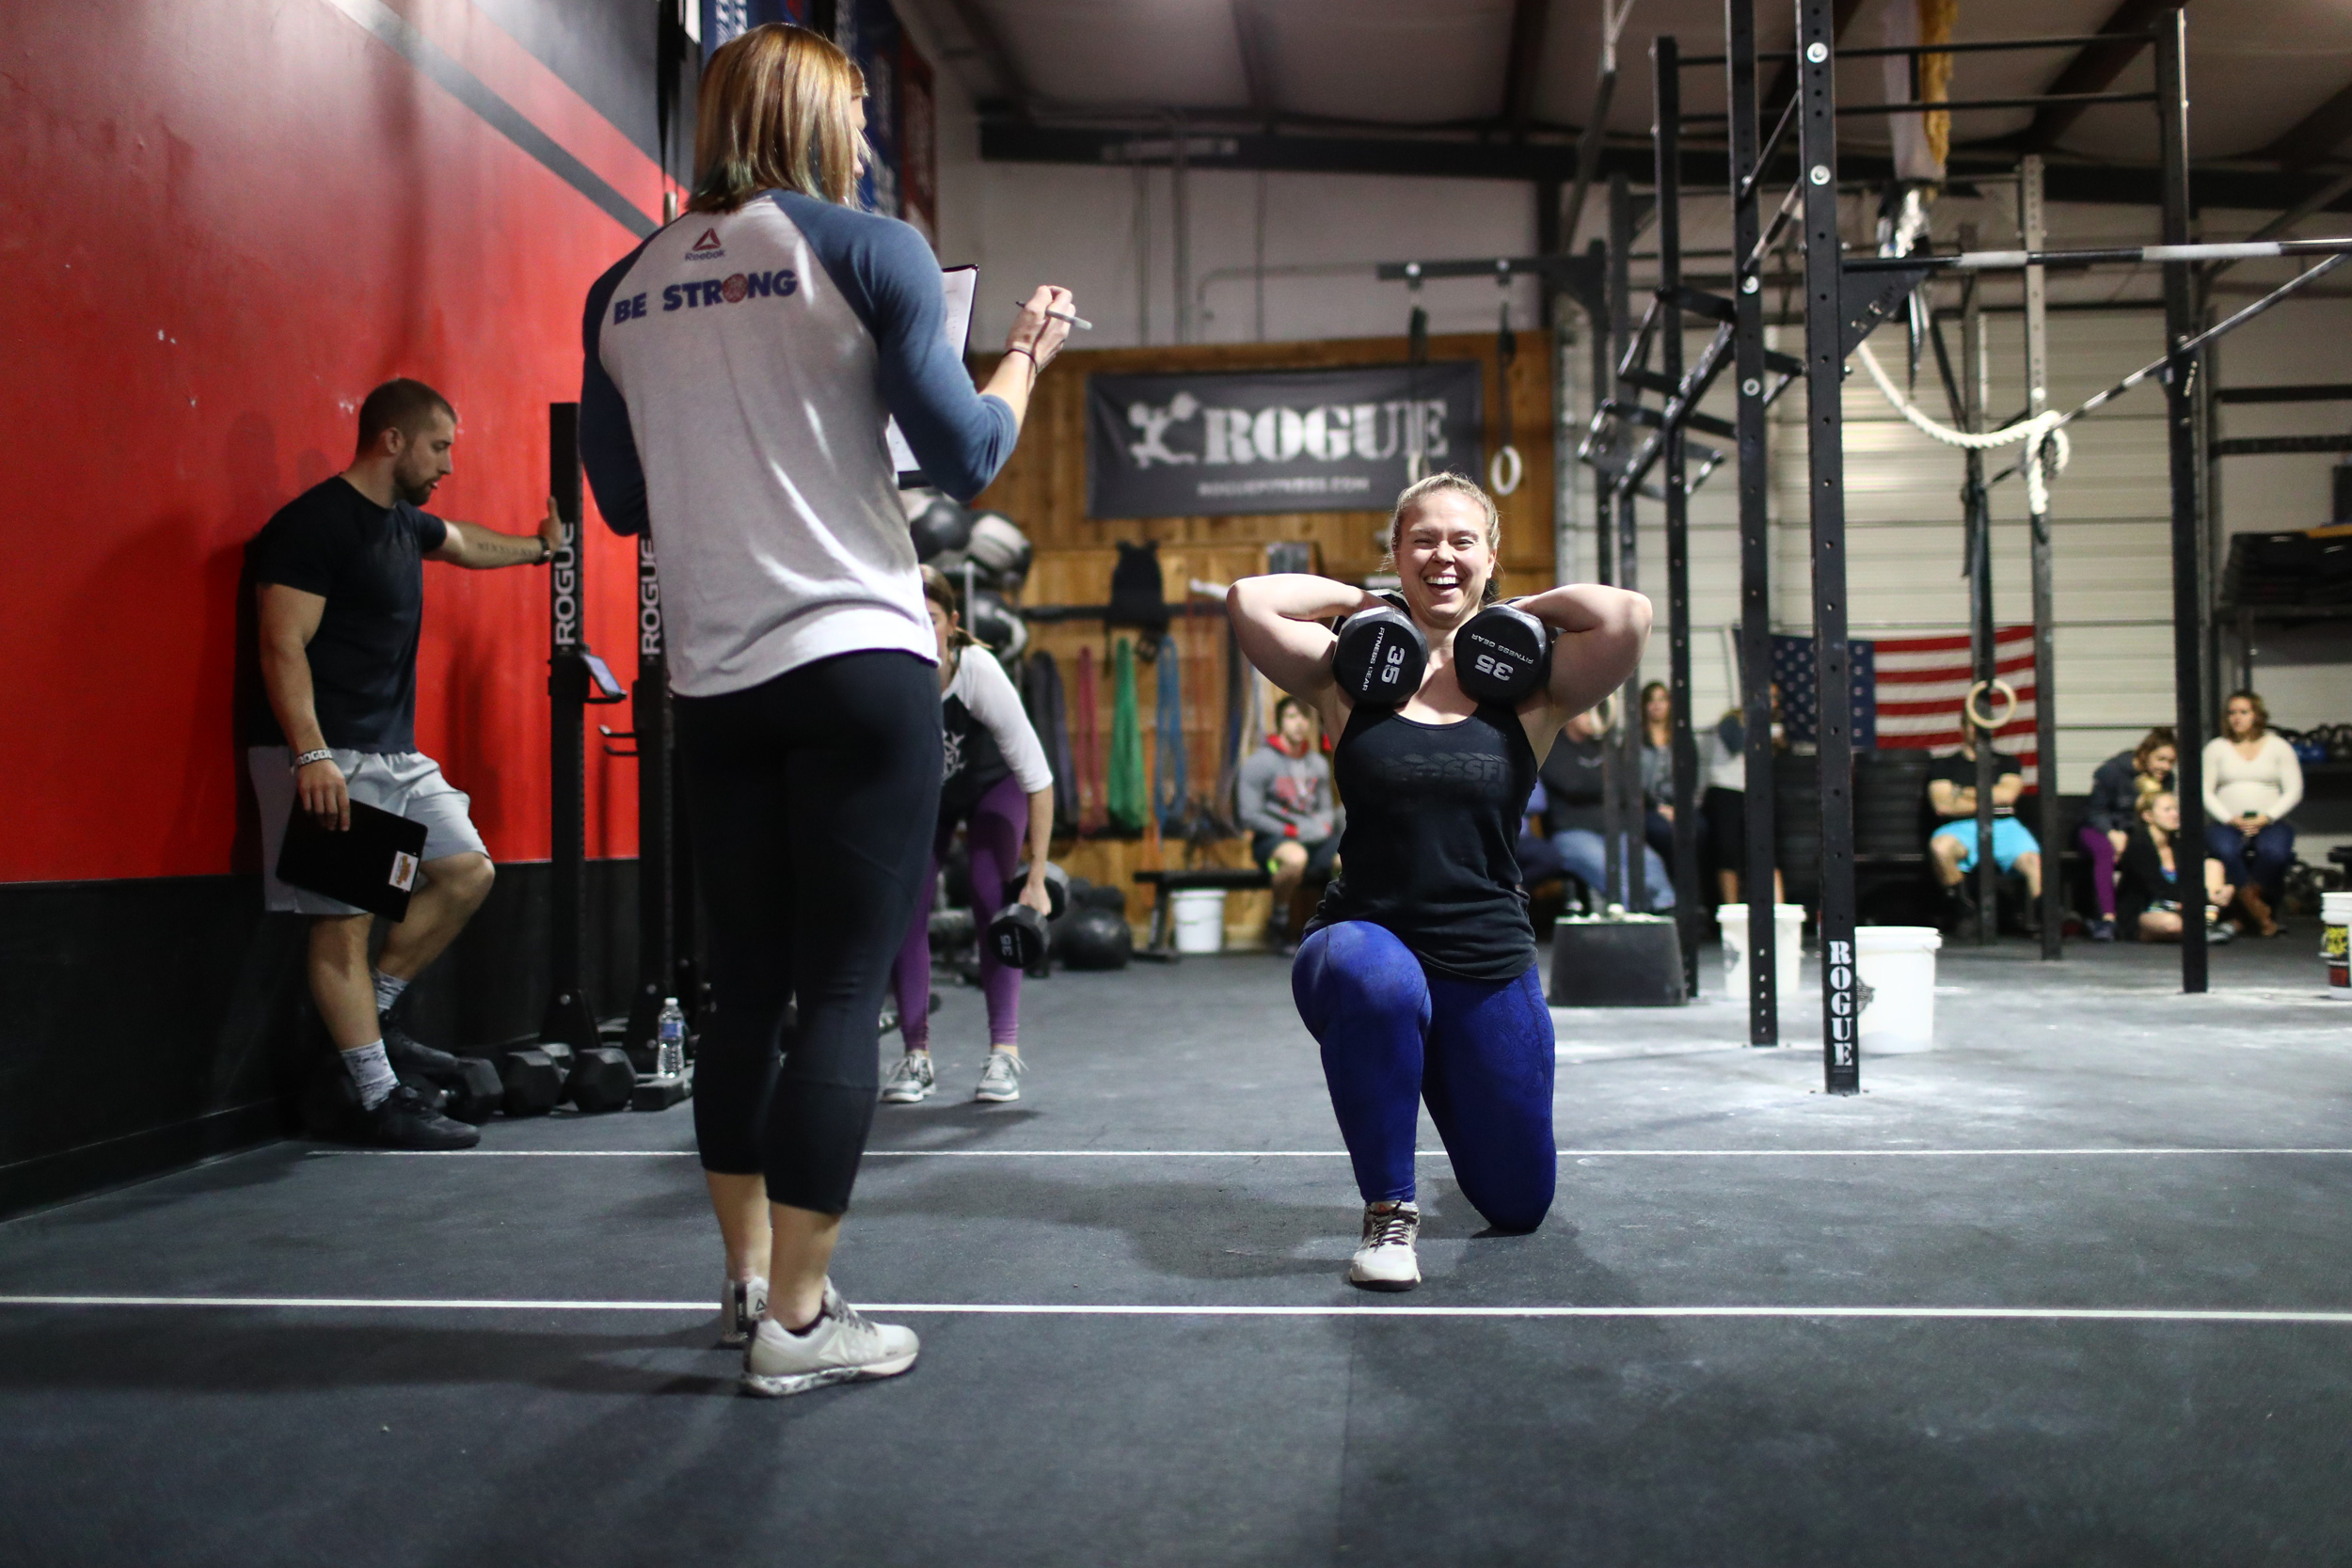 Open Workout 17.2 at a CrossFit Affiliate, Dumbbell lunge walks